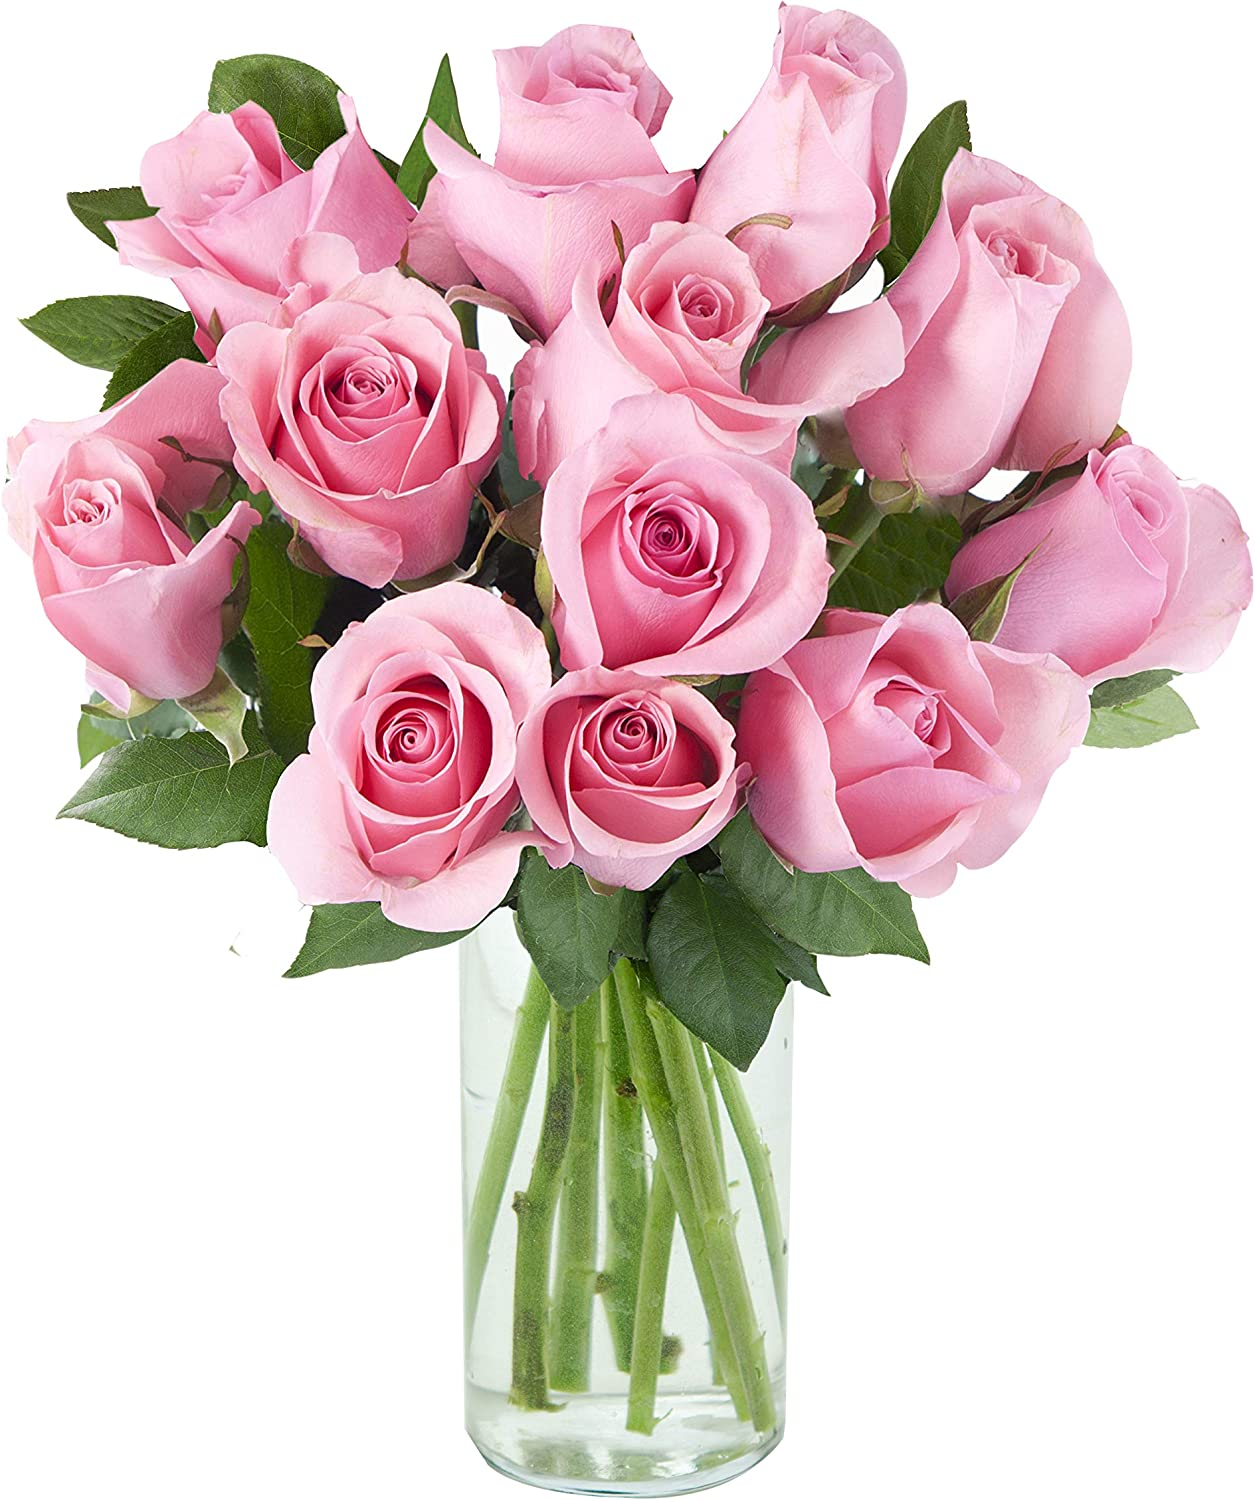 Purchase Now for Delivery by Tuesday | Arabella Farm Direct Bouquet of 12 Fresh Cut Pink Roses with a Free Glass Vase